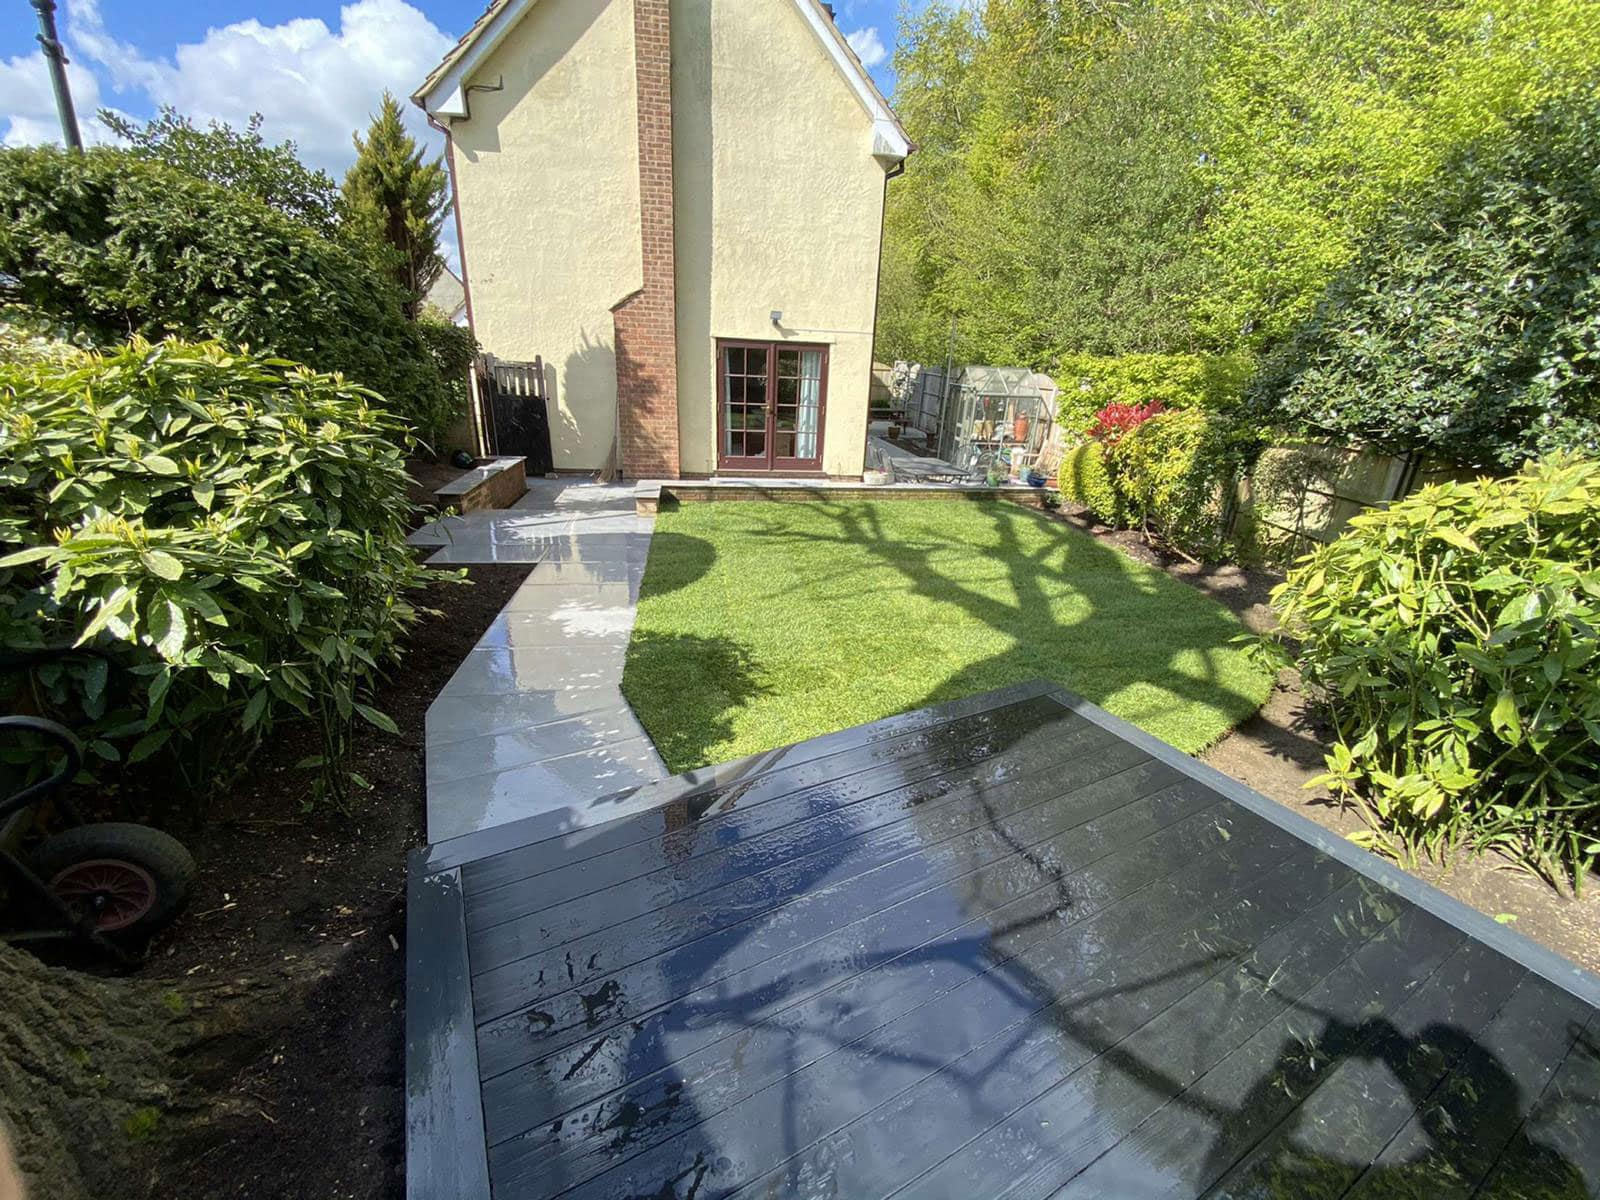 composite decking at the end of a mid sized garden looking onto lawns and planting